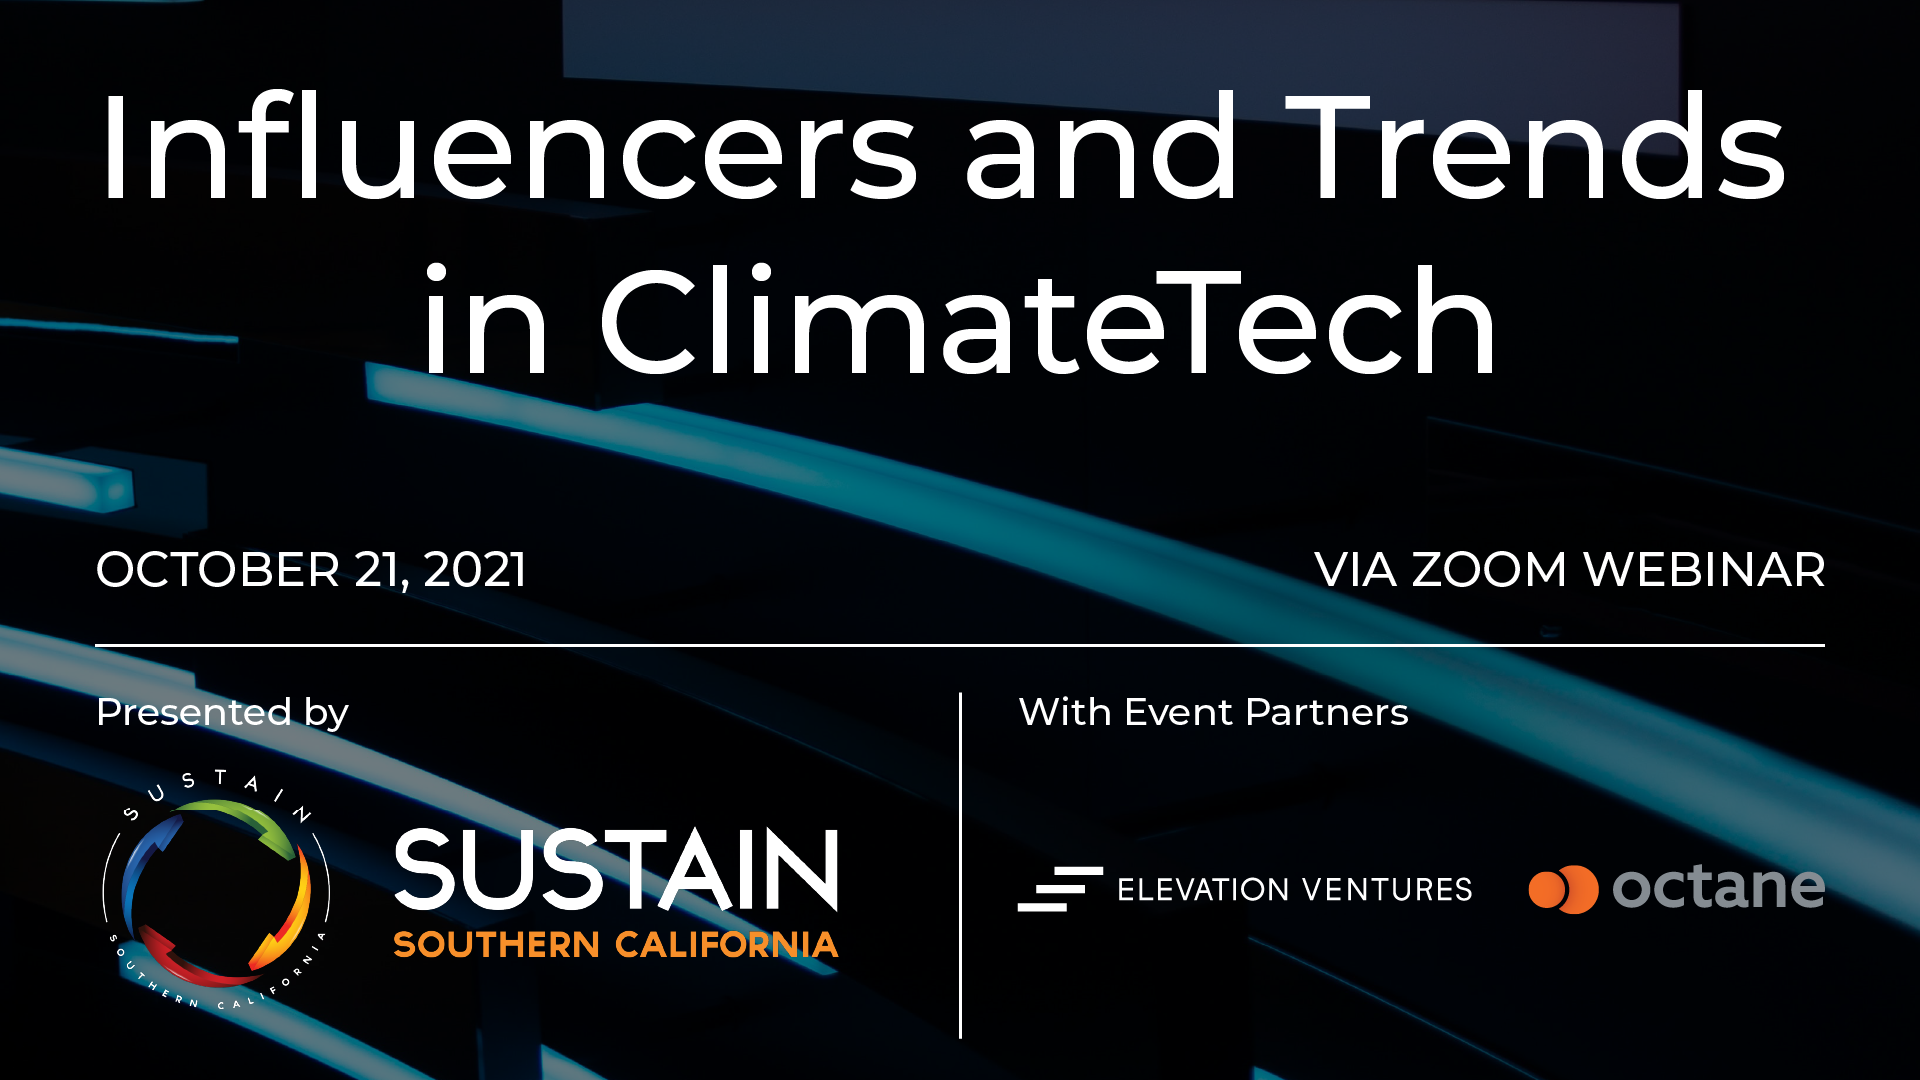 Climate Tech Influencers and Trends